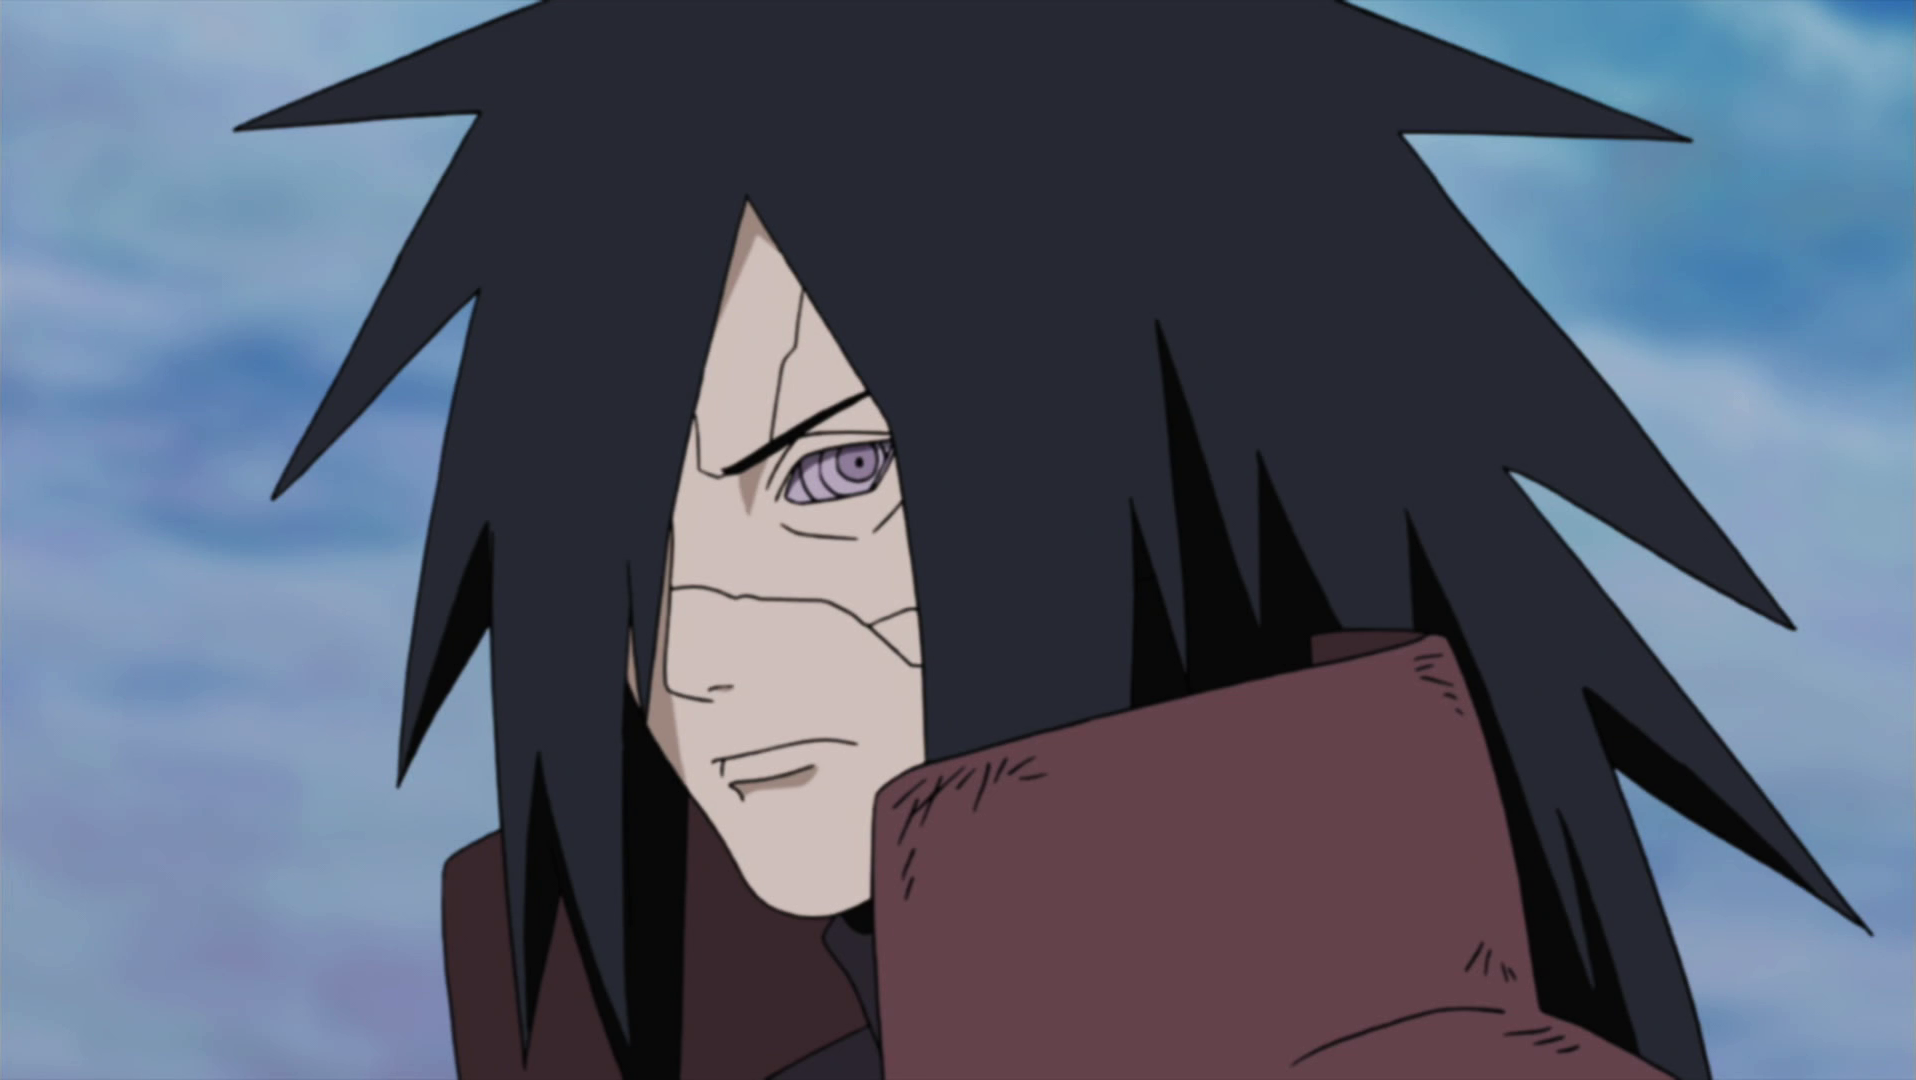 Madara is superior to Itachi in every way